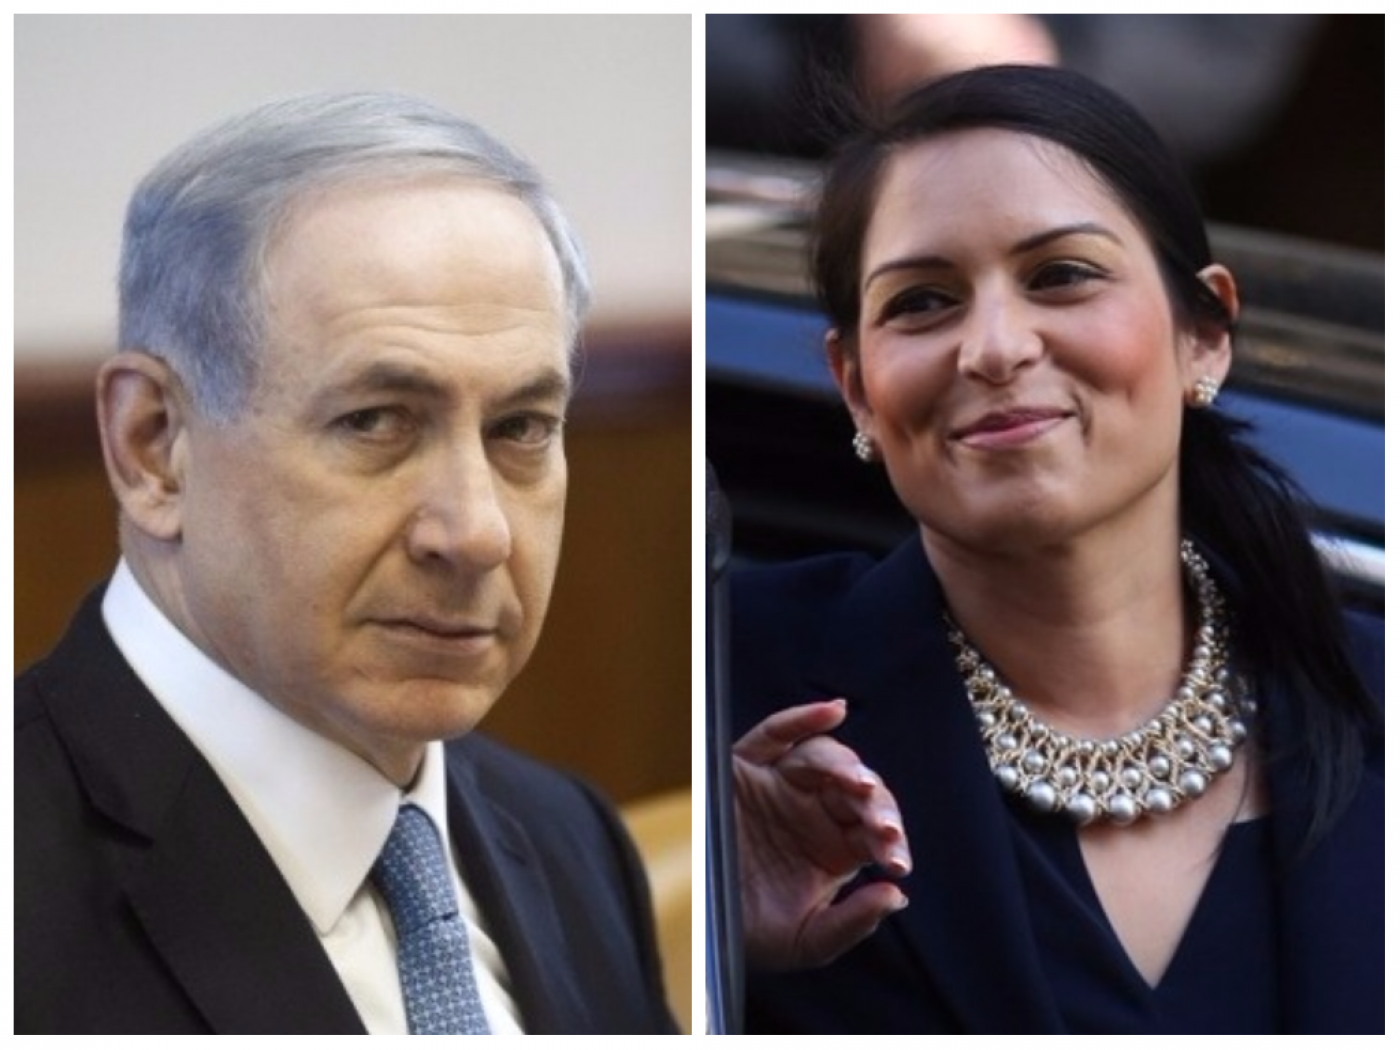 Priti Patel Called For Uk To Give Aid Israeli Army After Visit Israel